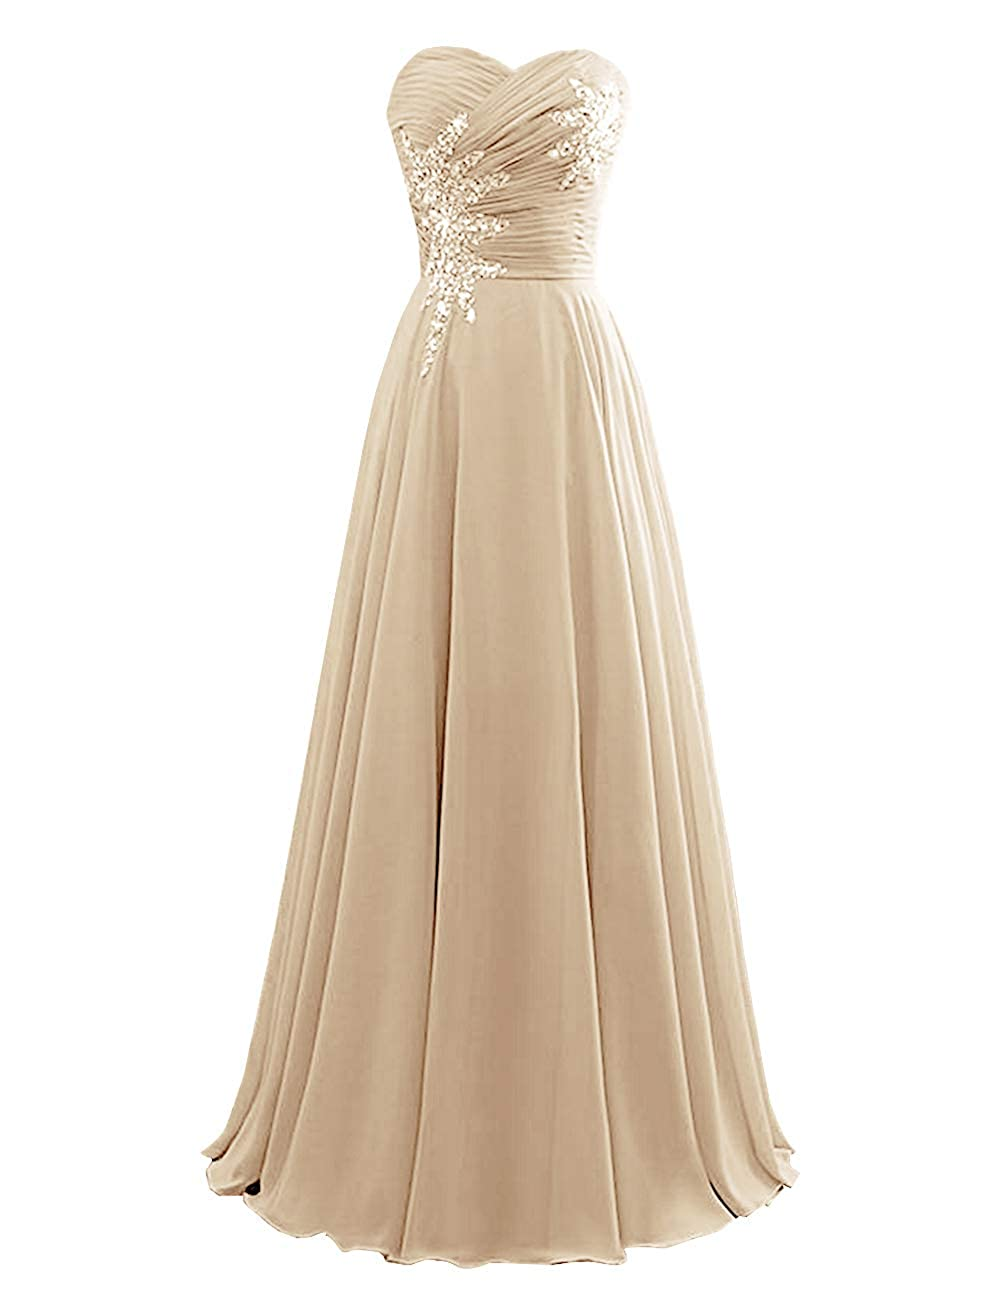 Champagne Women's Strapless Bridesmaid Dresses Beaded Prom Wedding Party Gowns